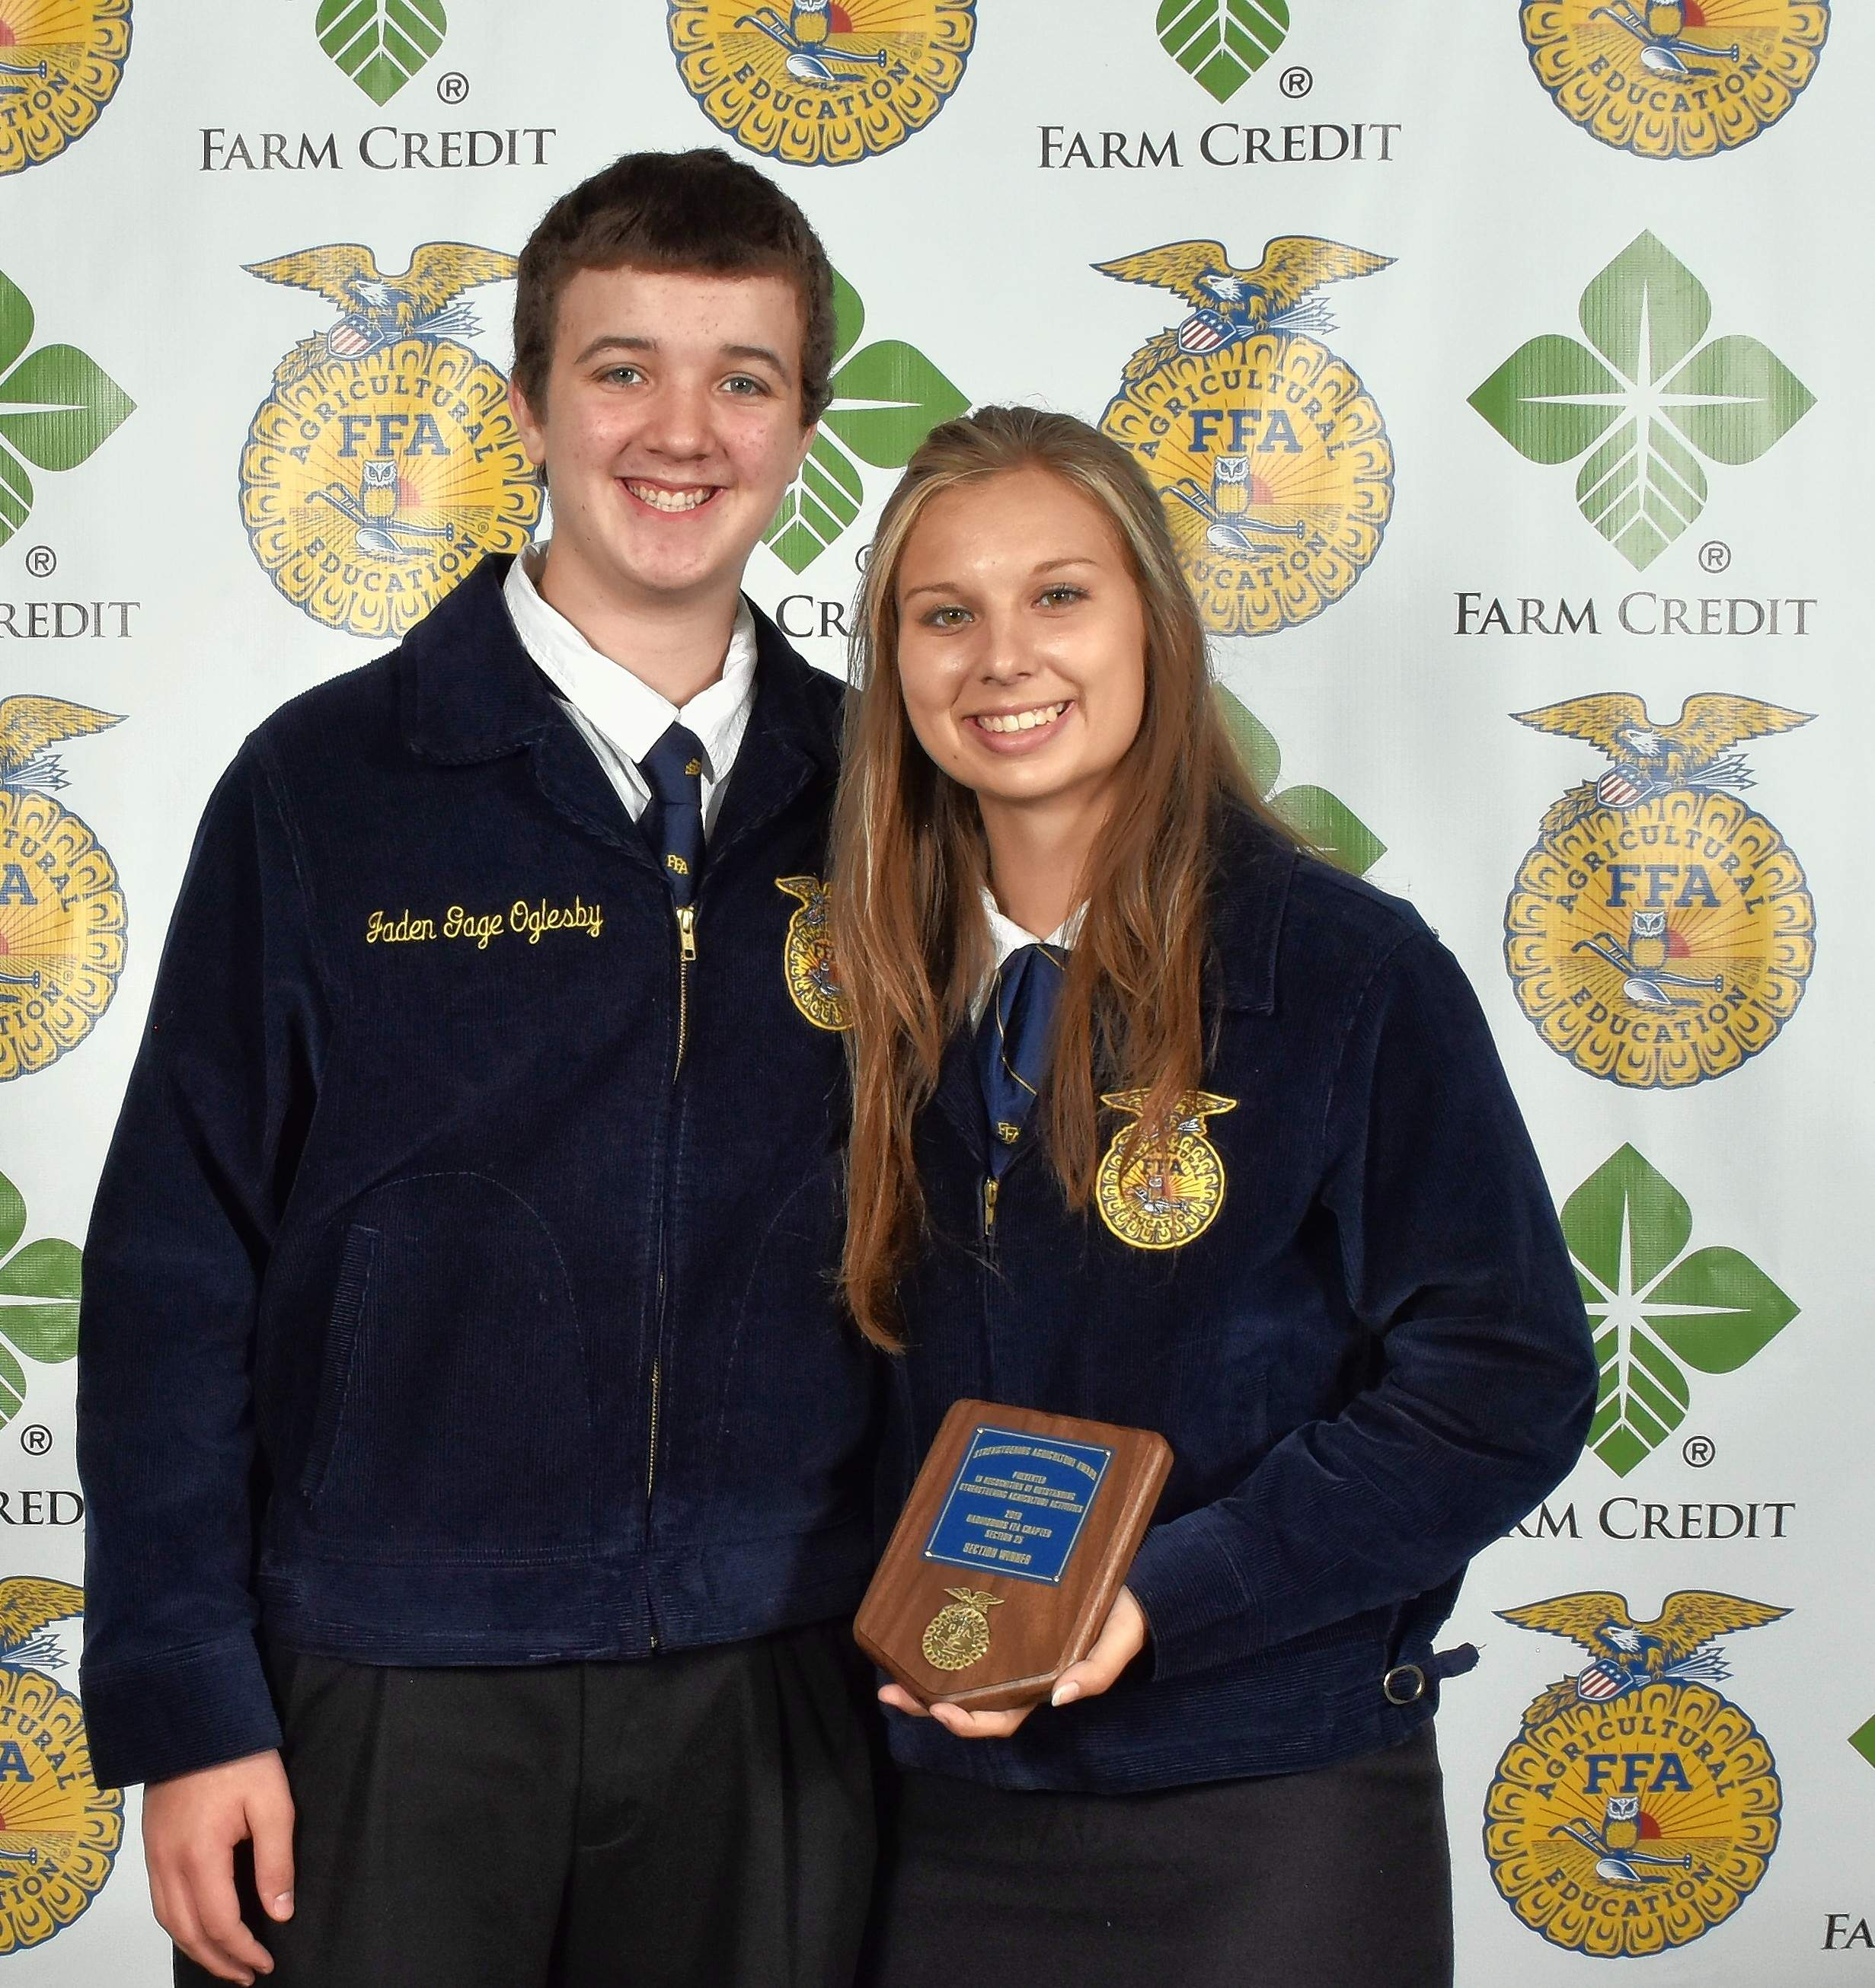 Paige Cook, right, and Jaden Oglesby with the Strengthening Agriculture National Chapter Section Award. As part of the National Chapter Award program and the chapter's program of activities, Strengthening Agriculture is designed to encourage opportunities and service for members, such as promoting increased member participation and financial responsibility, creating a positive image, and interacting with support groups and cooperatives through organized activities.